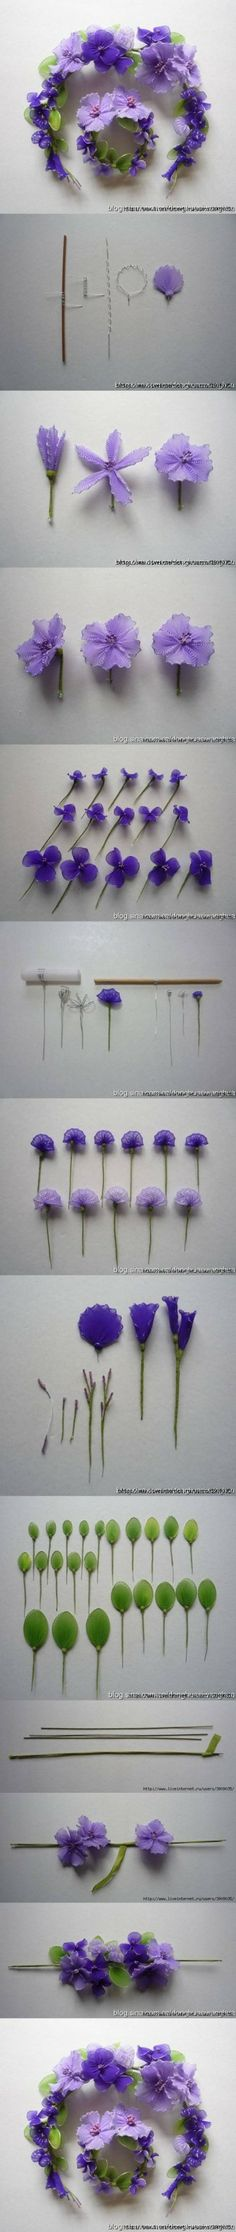 FREE PHOTO TUTORIAL ~ DIY Wire Nylon Flowers DIY Projects